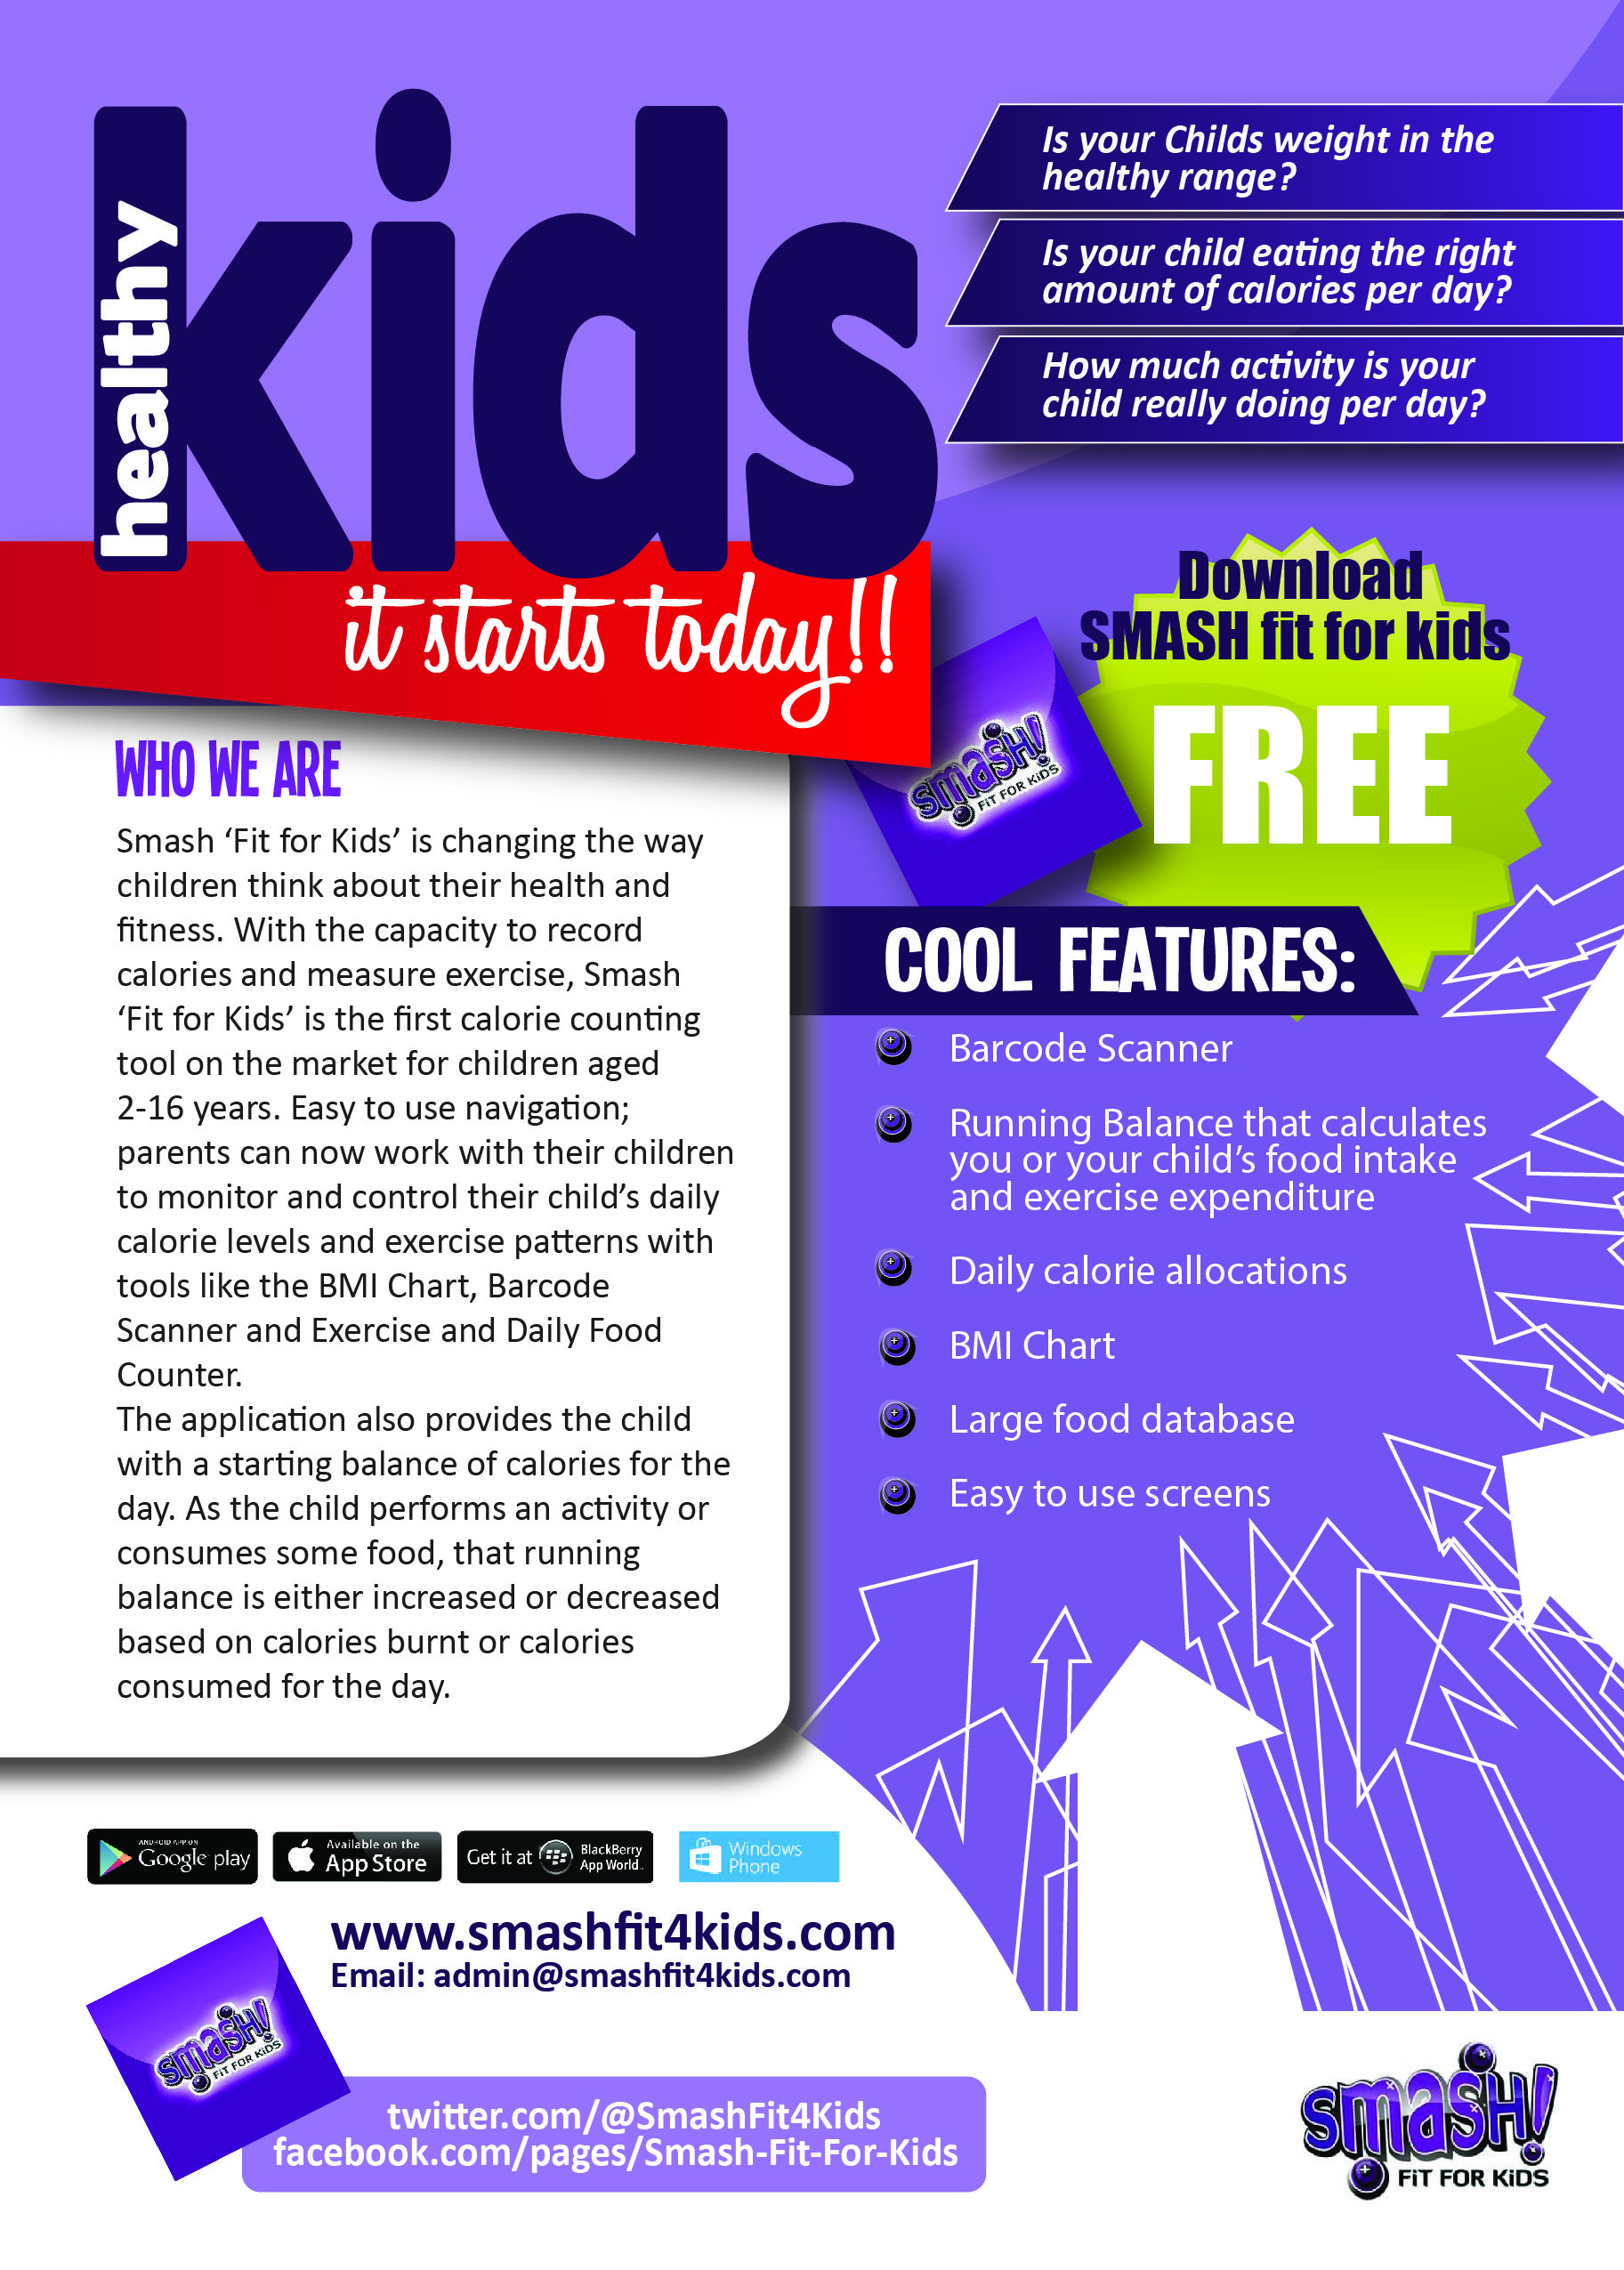 Smash fit for kids is changing the way children think about smash fit for kids is changing the way children think about their health and nvjuhfo Gallery